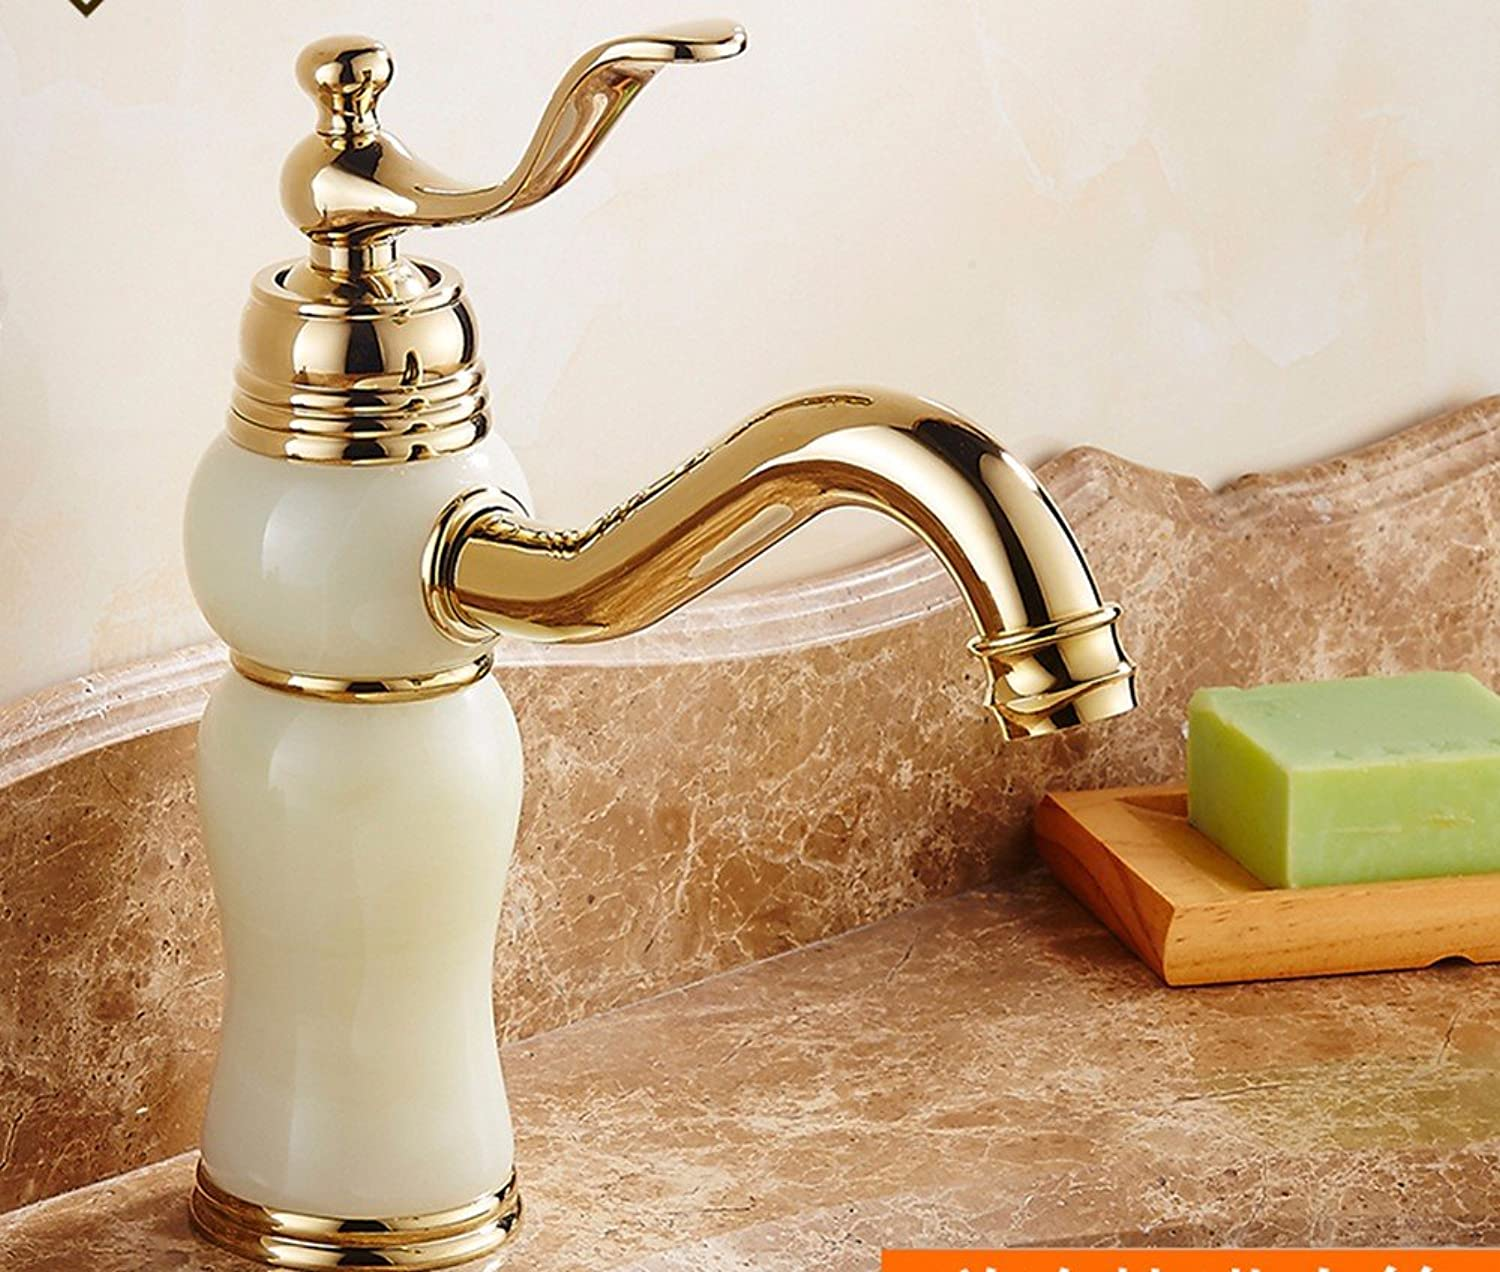 Hlluya Professional Sink Mixer Tap Kitchen Faucet Copper basin, hot and cold, washing your face, jade, gold, sink Faucet 13